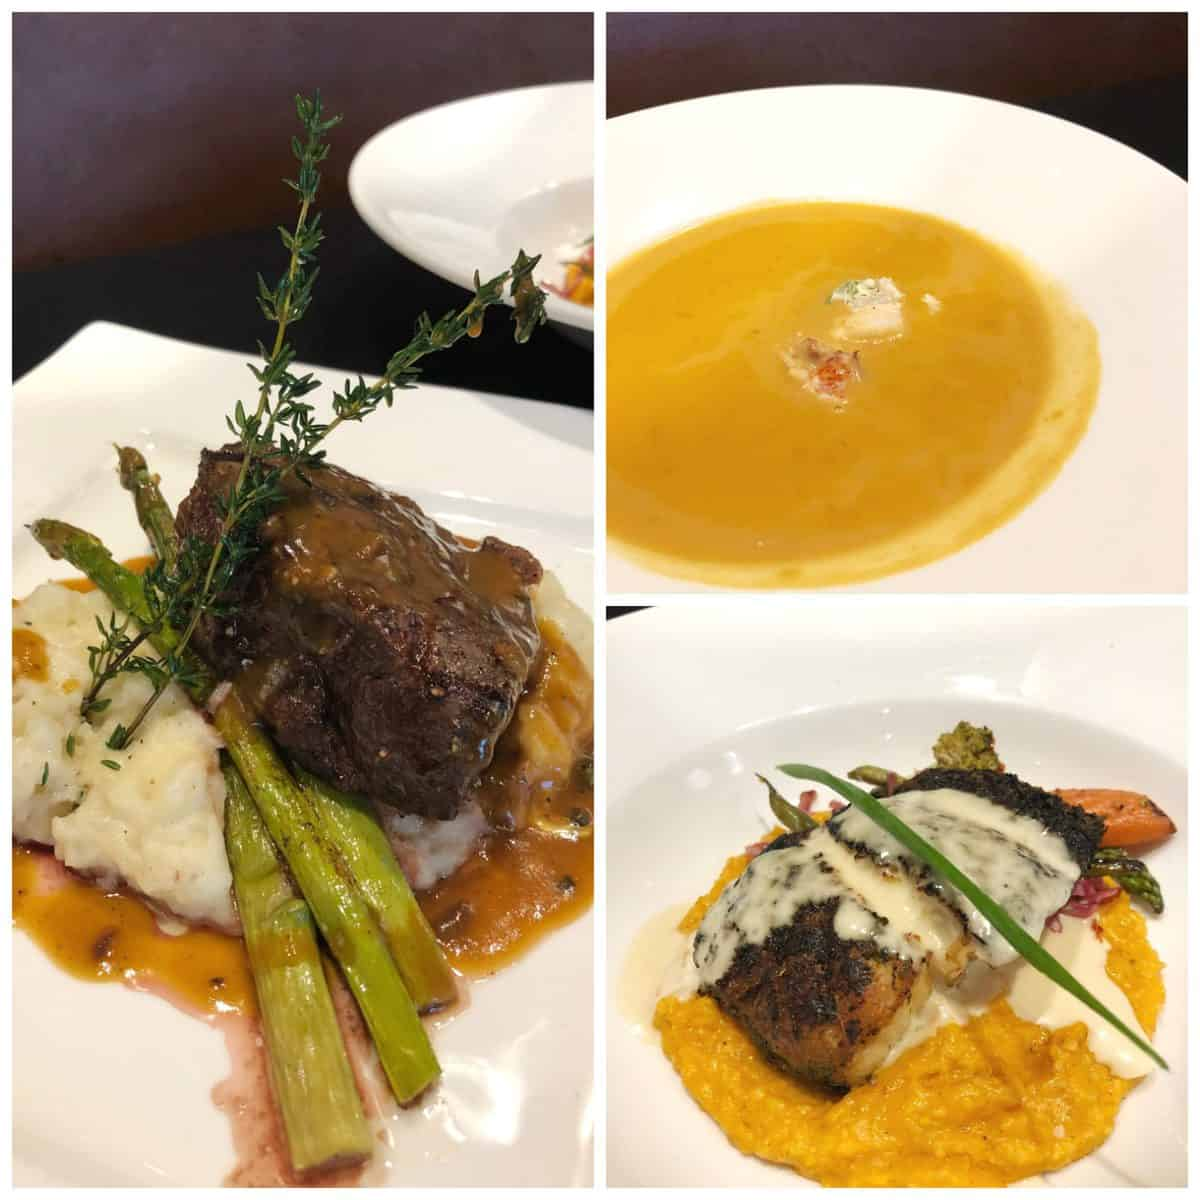 3 photo collage of steak over mashed potatoes with gravy and asparagus, soup, and fish.